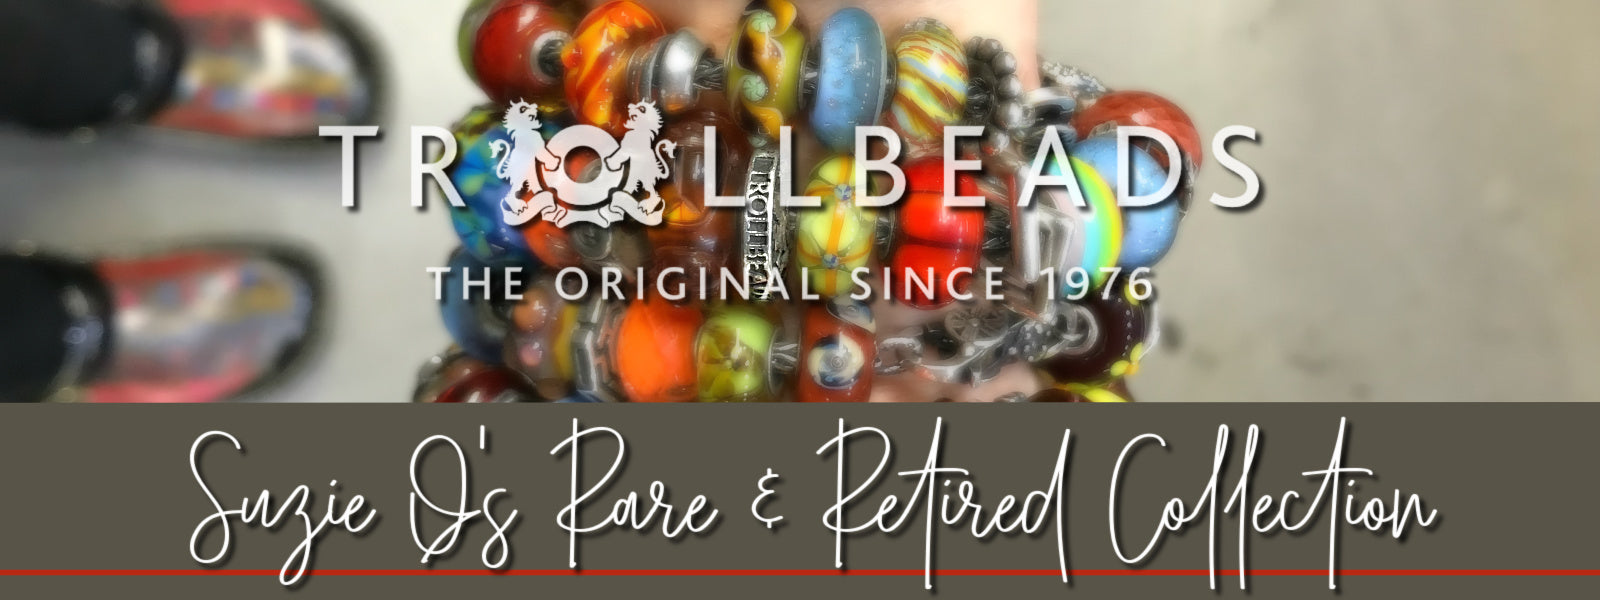 Glass and sterling silver rare and retired Trollbeads are available to purchase now at Suzie Q Studio. Check back to see the rest of the Rare and Retired Trollbeads Collection, which will be launching very soon!